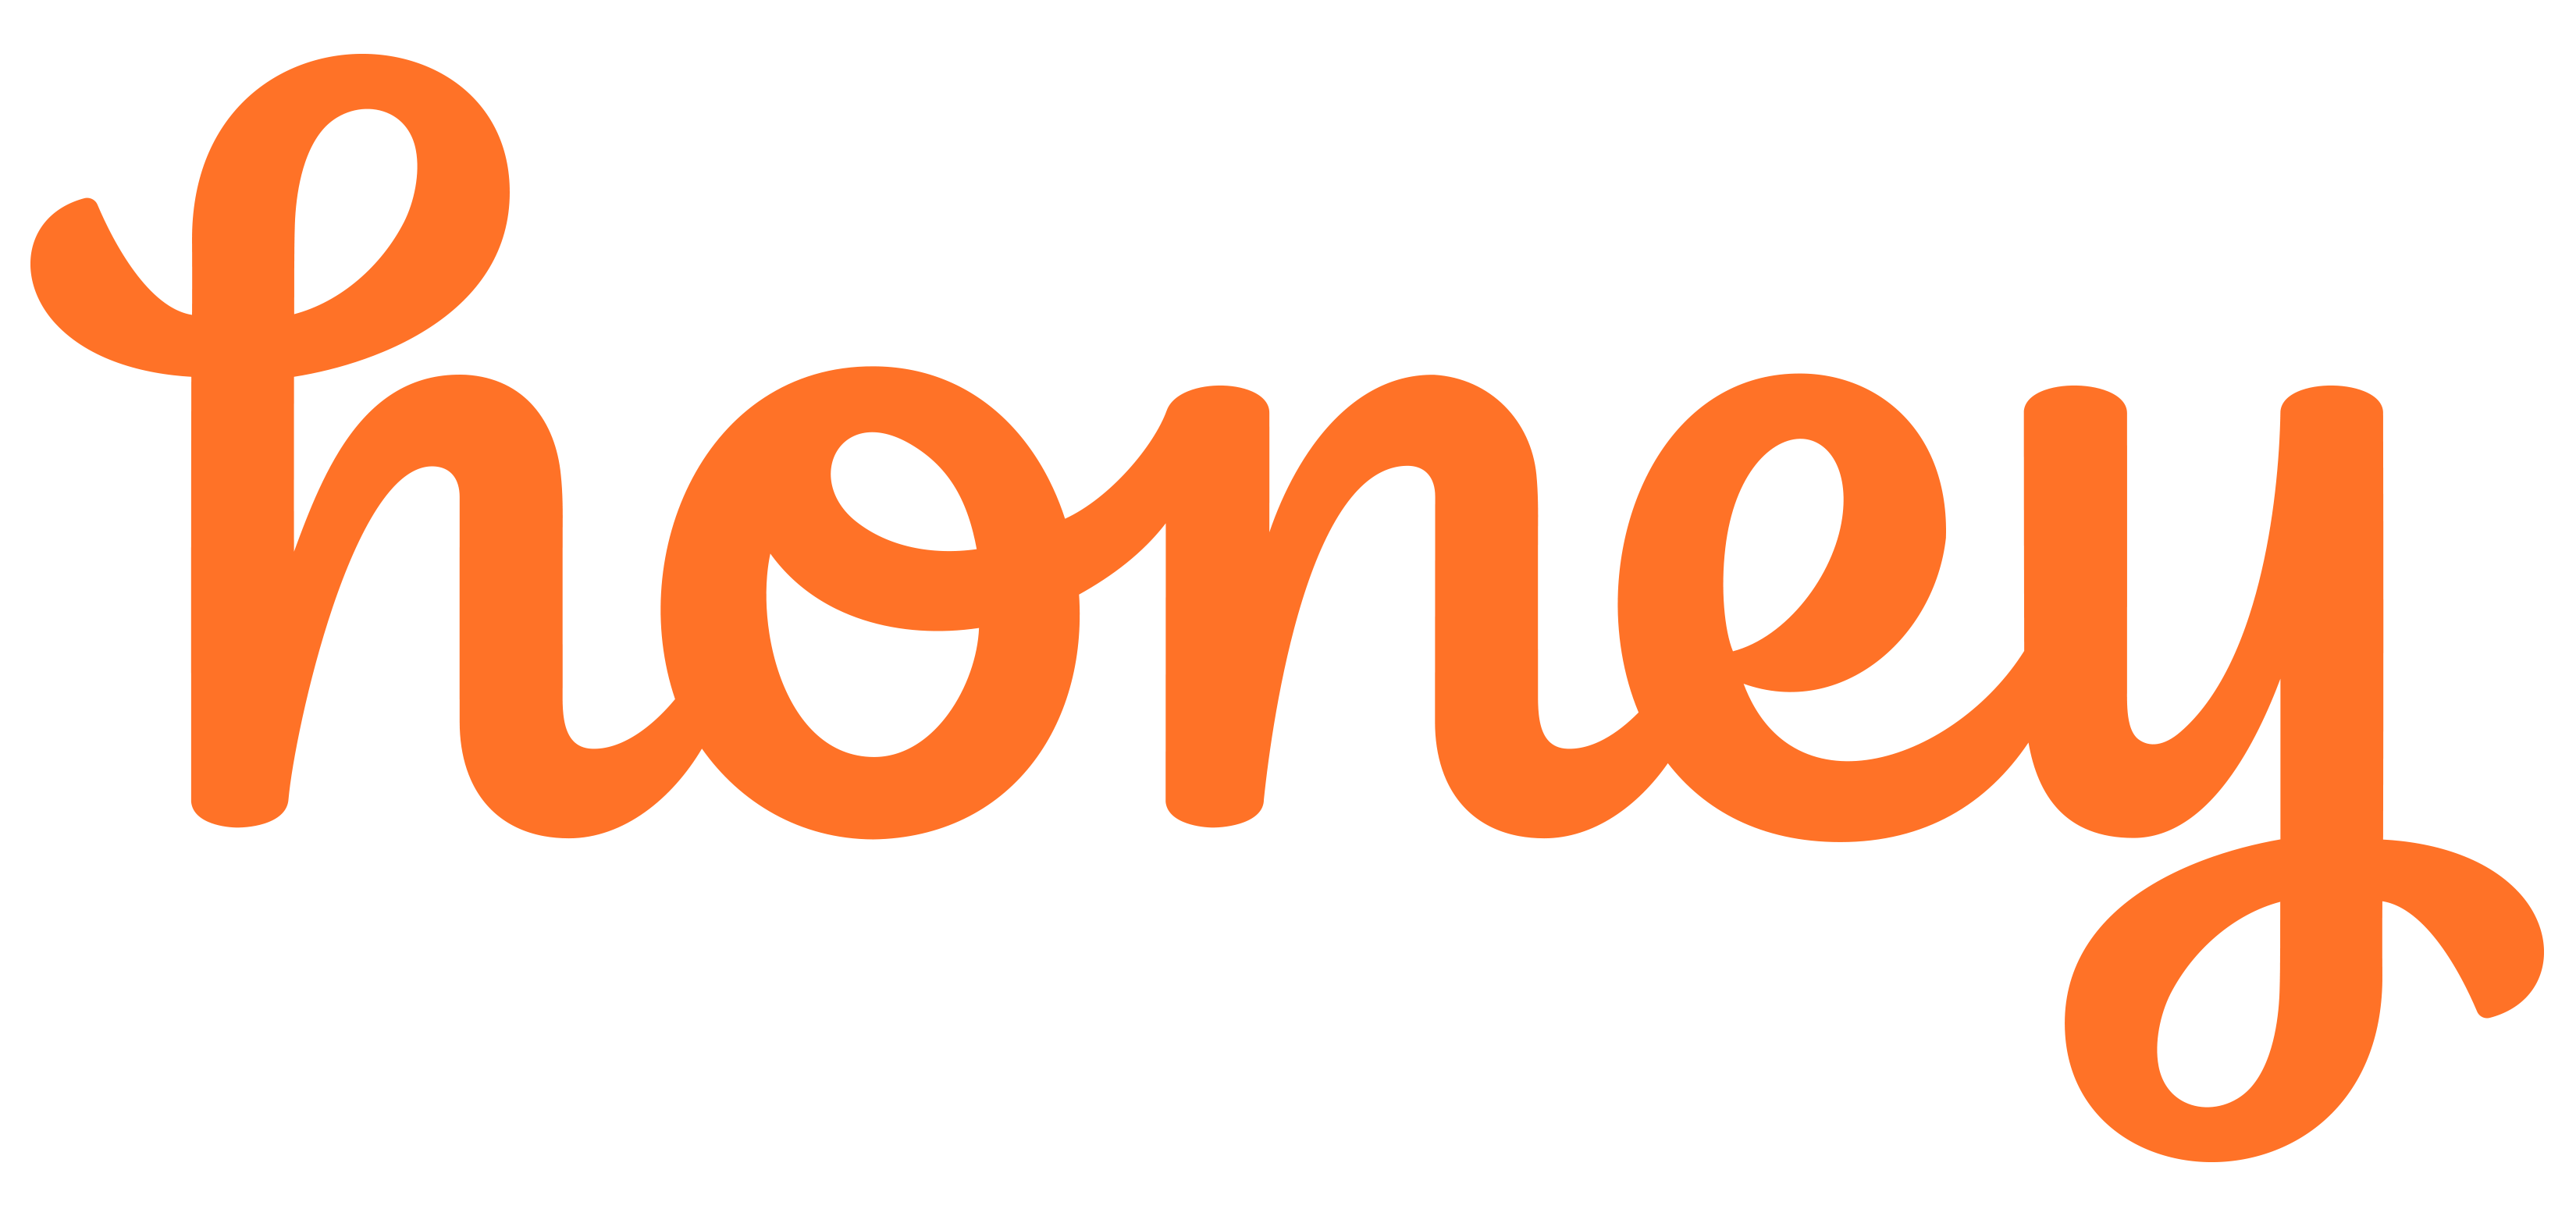 File:Honey Logo Orange.png.